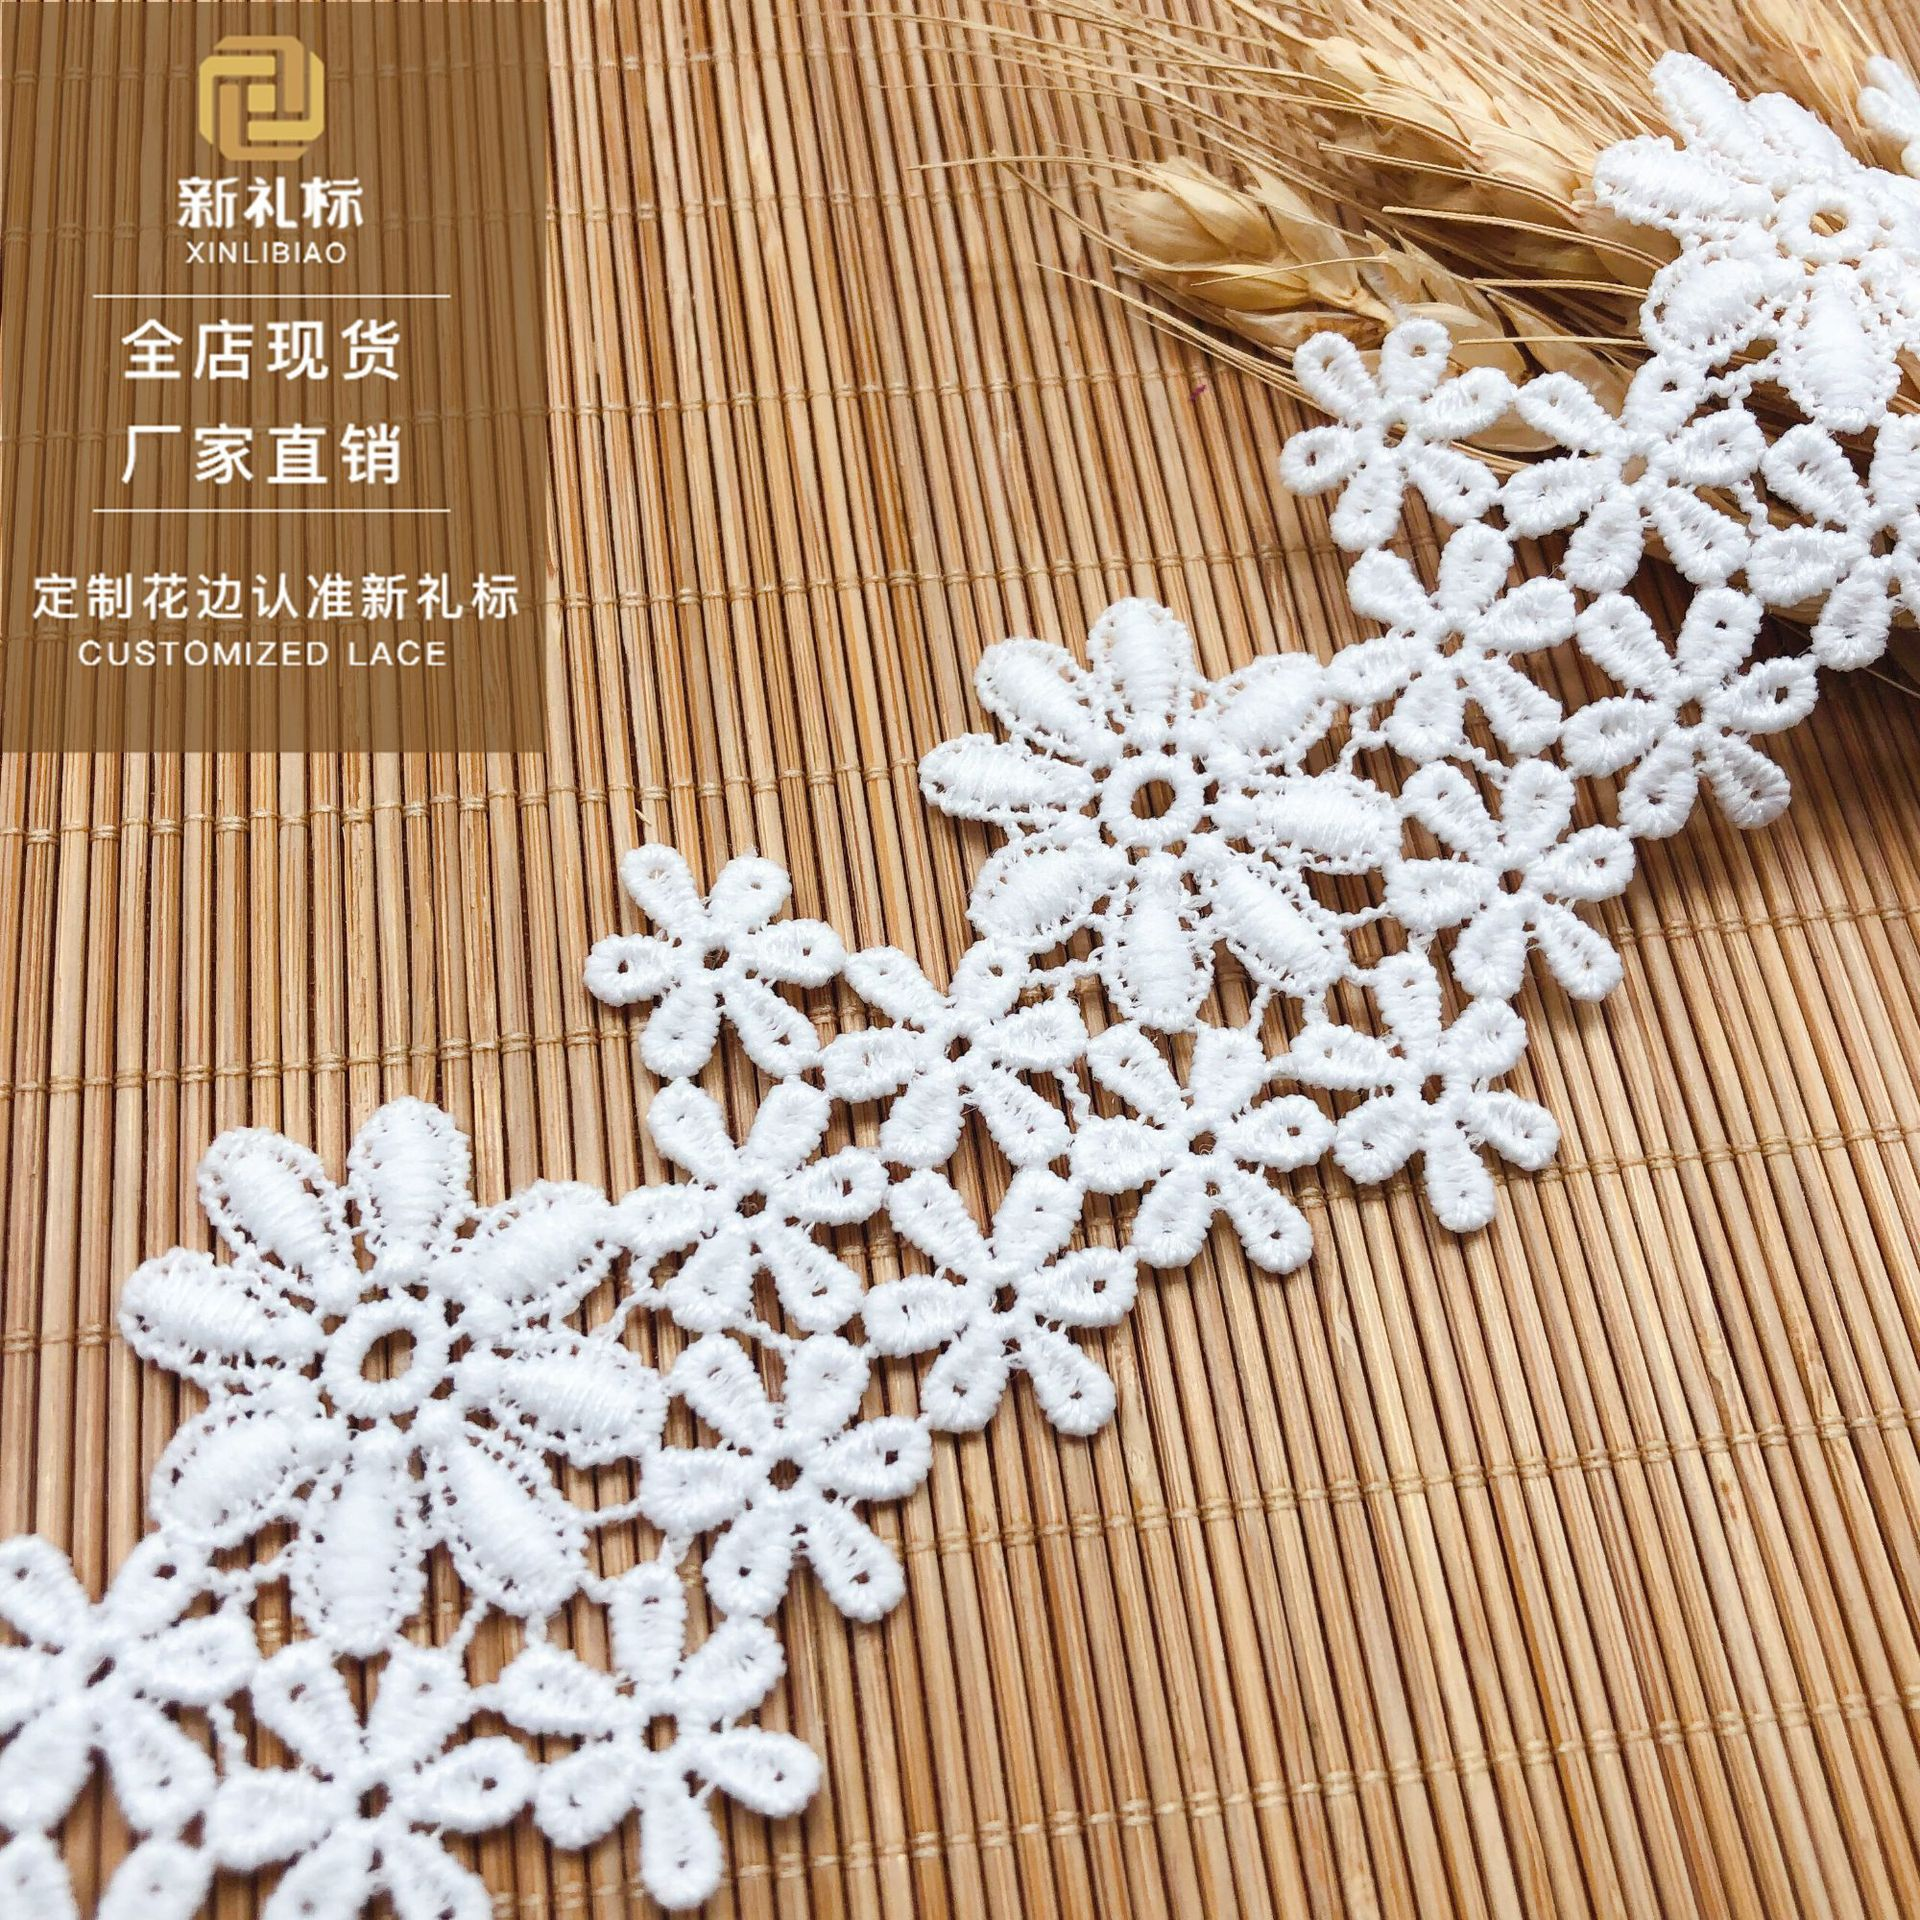 XINLIBIAO Water soluble lace clothing accessories DIY spot milk silk bar code computer embroidery fl